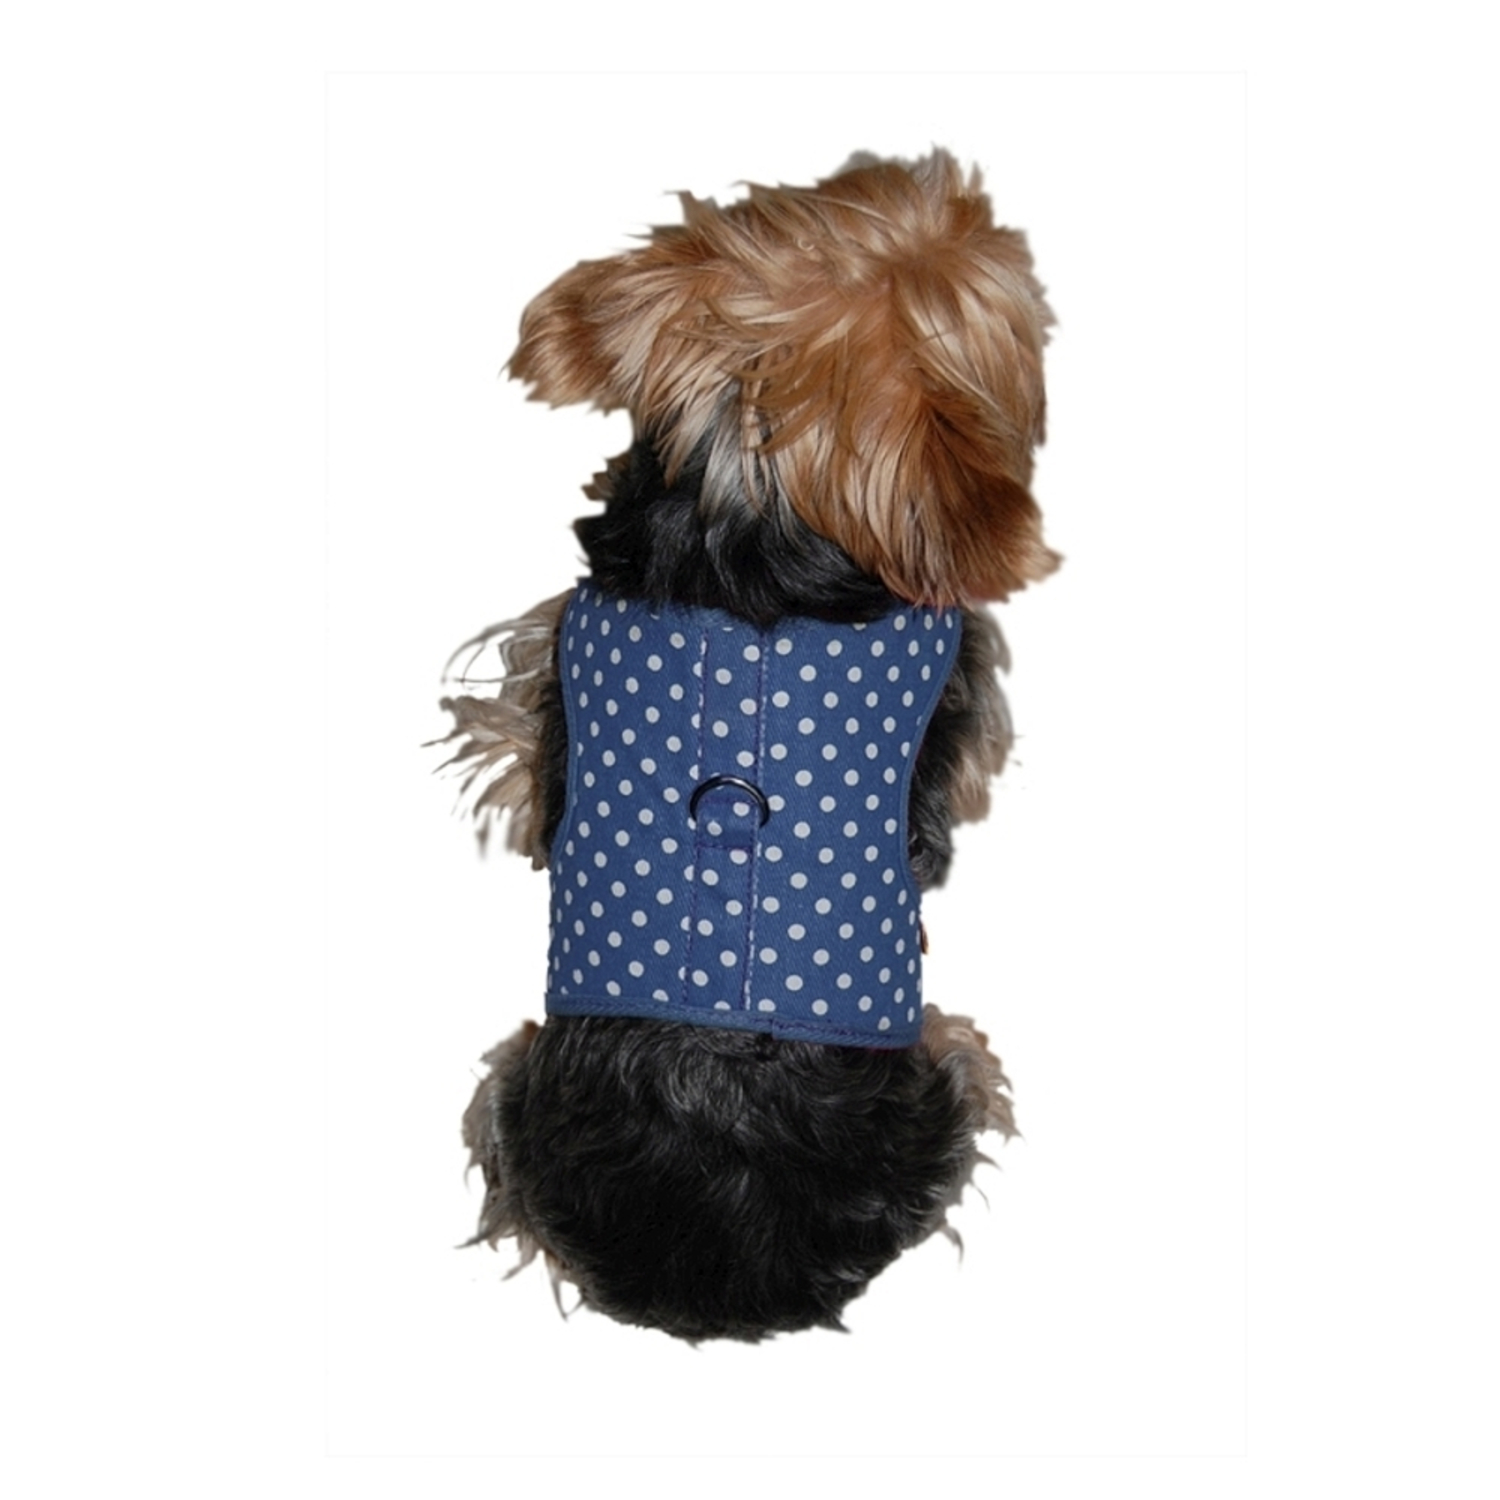 Blue Pet Dog Puppy Cute Poly Cotton Harness with Leash Chain Strap Rope Clothes Apparel - Extra Small (Gift for Pet)